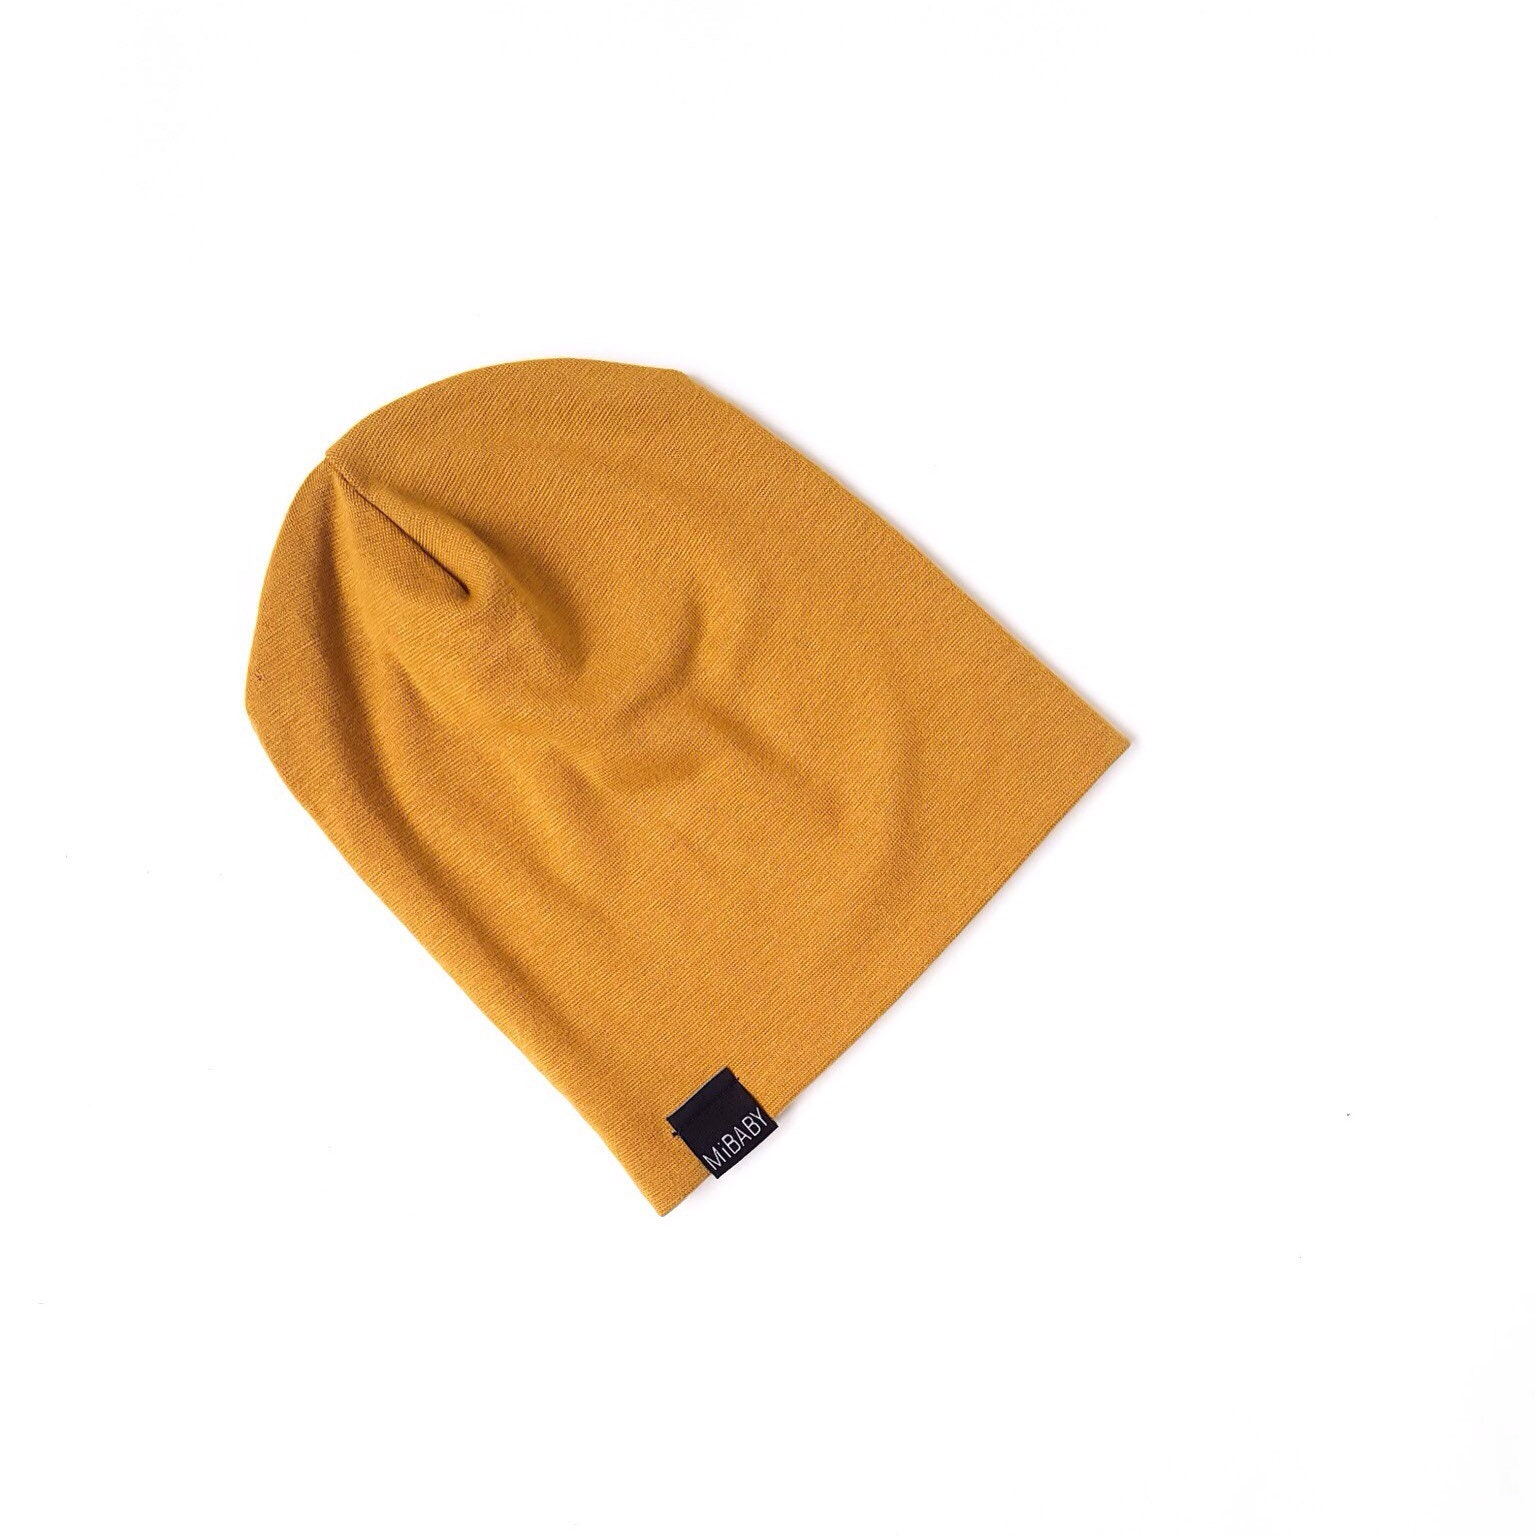 MUSTARD Yellow Gold Beanie Toddler Beanie Baby Beanie Kids Slouchy Beanie  Toque Baby Hat Mini Rib Extra Stretchy Bamboo New Born Hat Mibaby 992072826e8